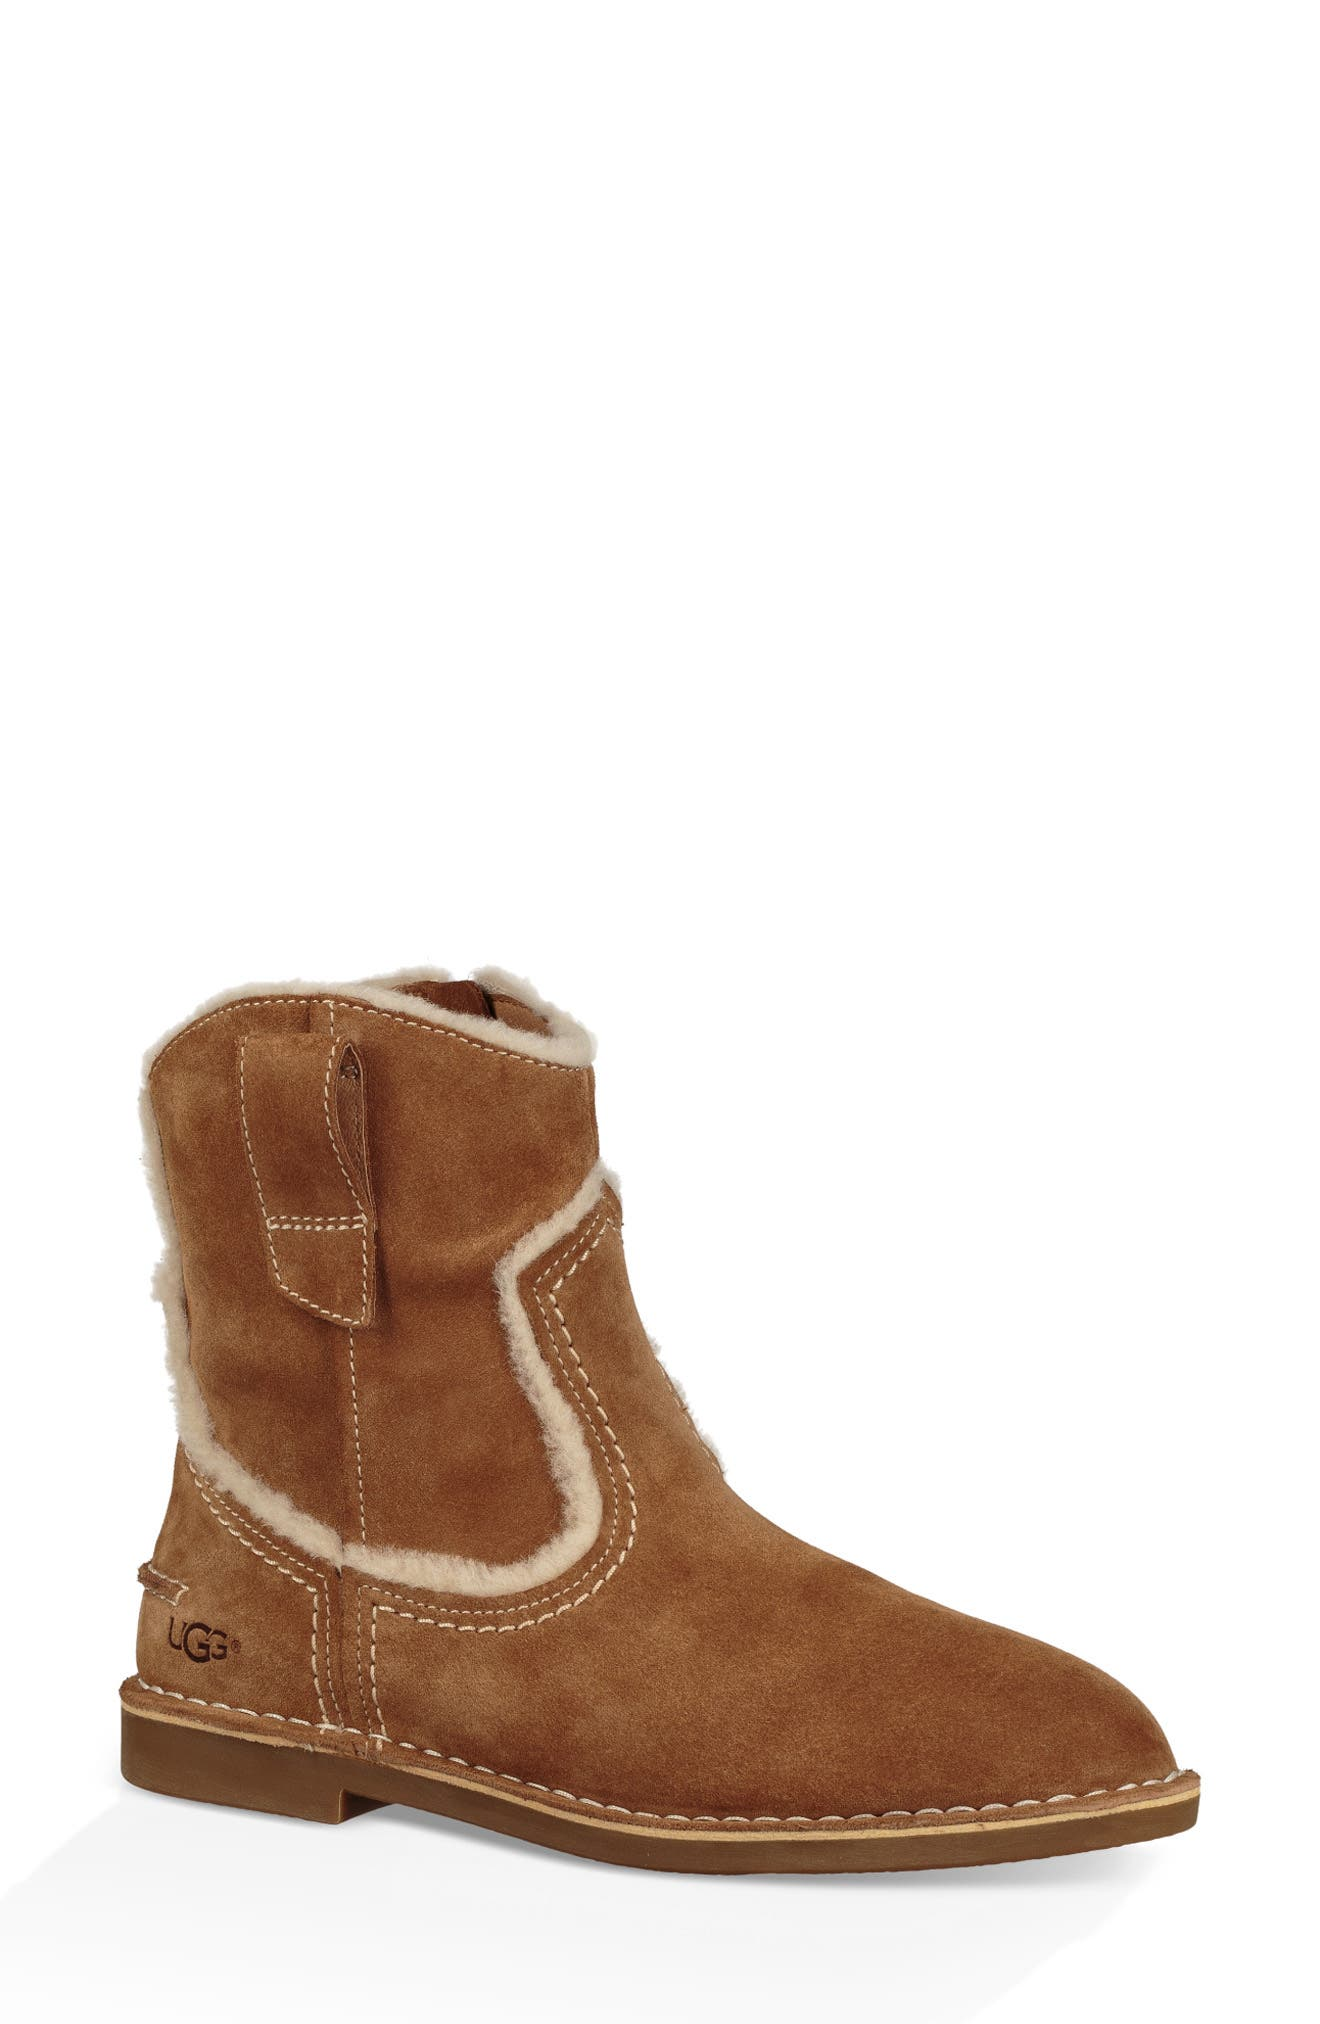 Ugg Catica Boot- Brown